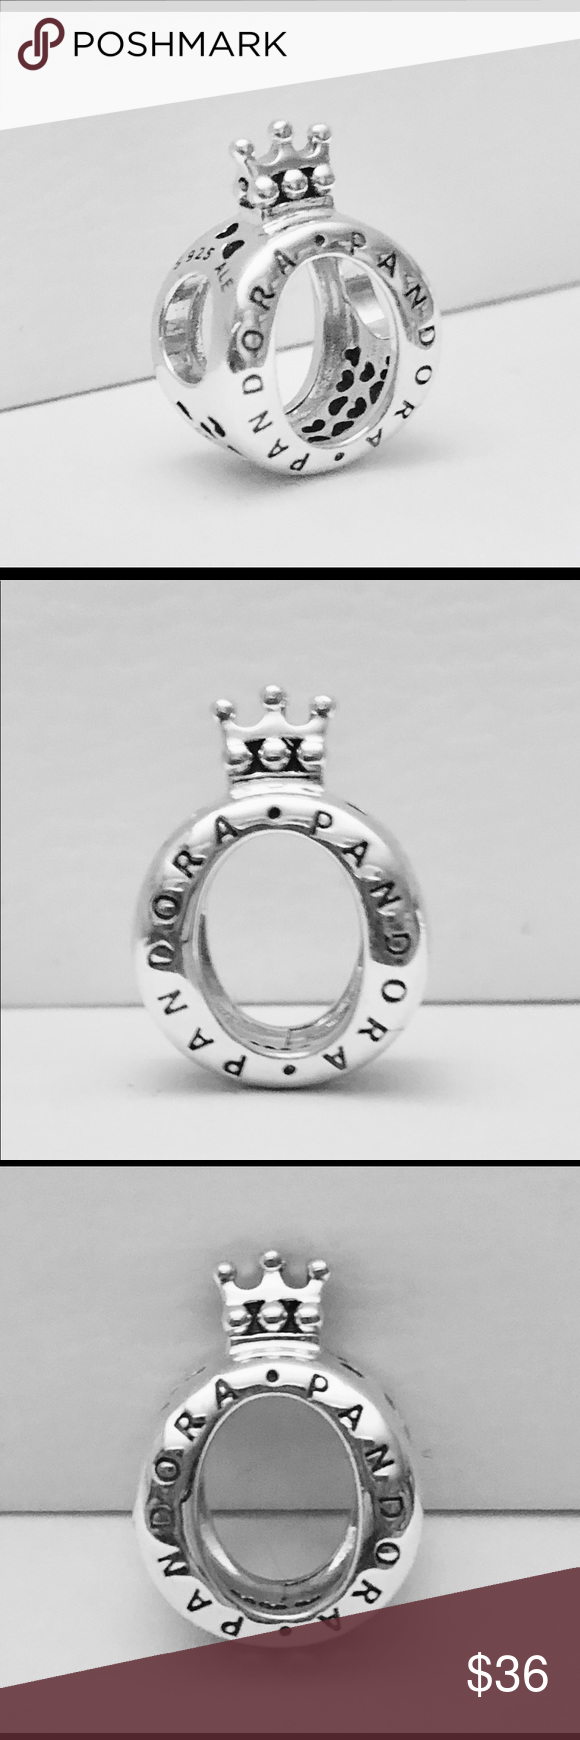 50678bde9 Authentic Pandora Crown O Charm Sterling Silver with Hallmark Stamp S 925  ALE. Comes With Pandora Tag and Box. FIRM PRICE. Thank You. PANDORA Jewelry